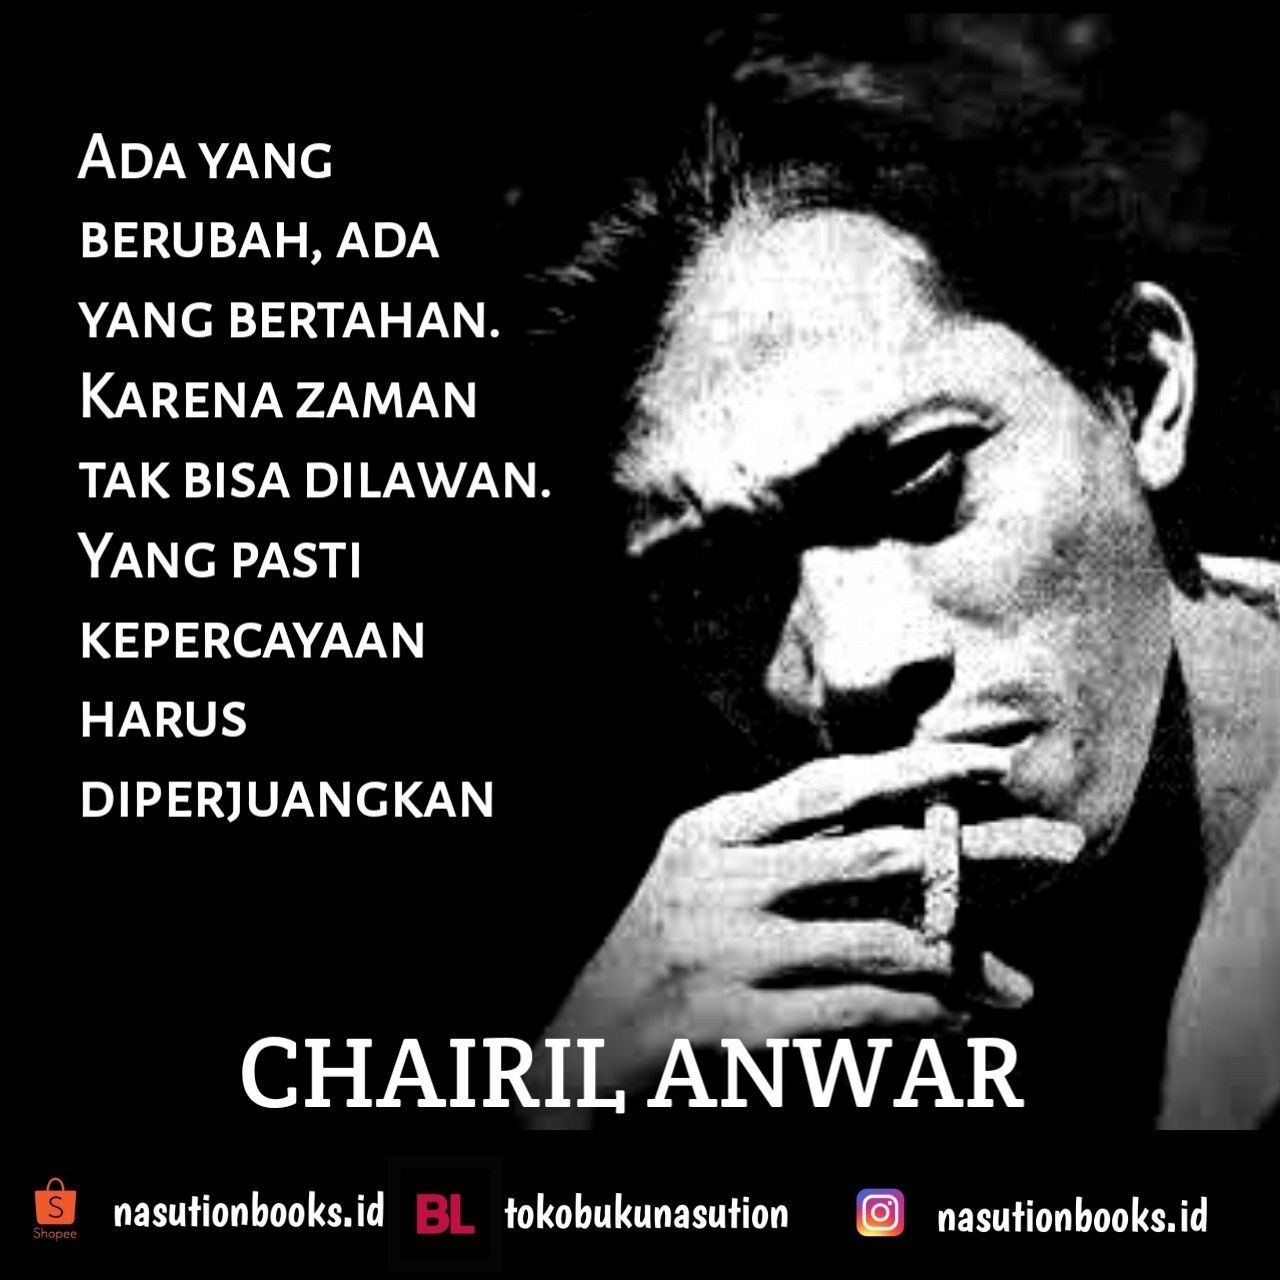 Wise Quotes Chairil Anwar